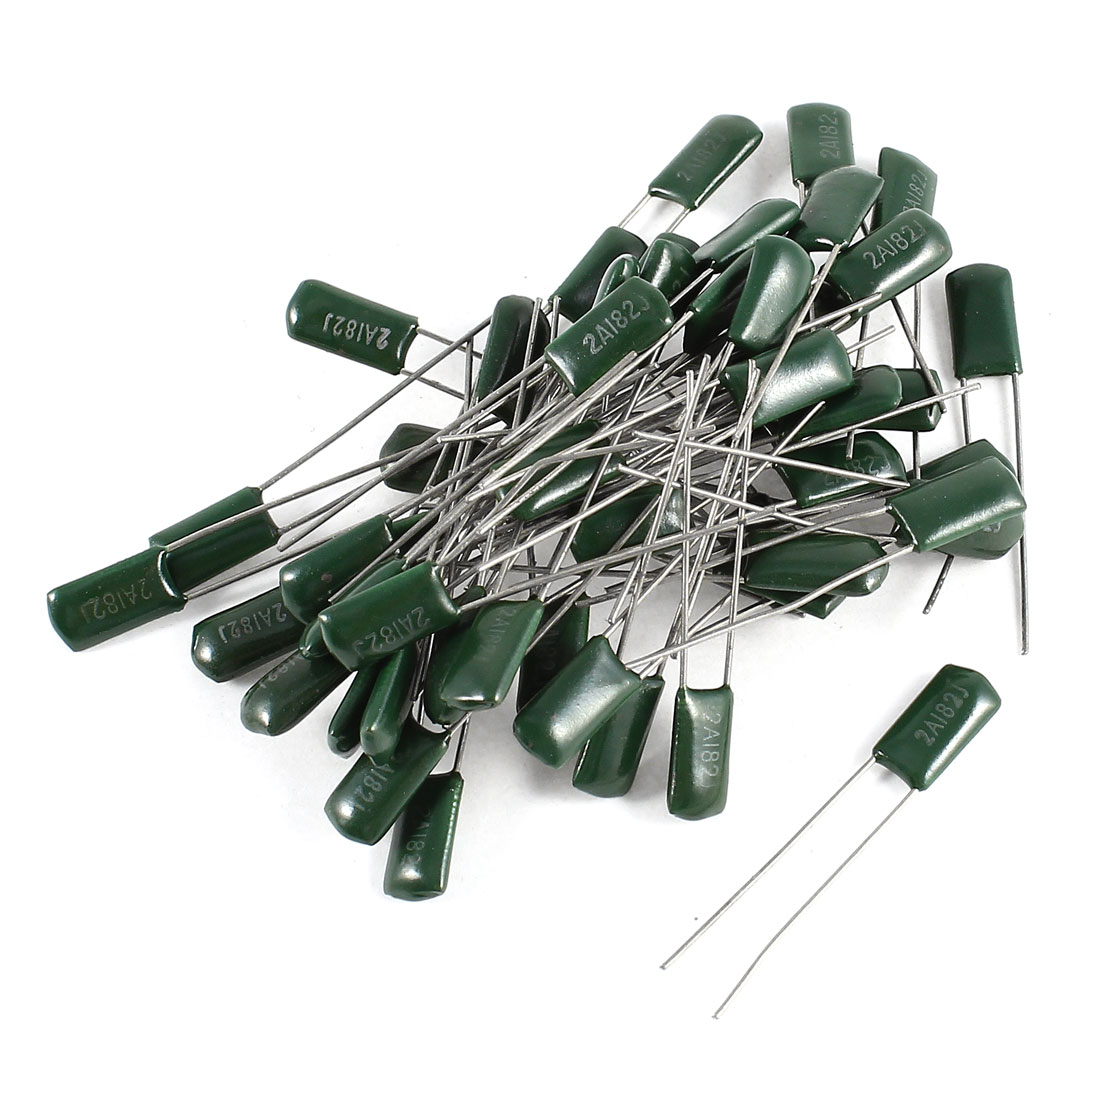 50 Pcs Radial Leads Polyester Film Cap Capacitance Capacitors Green 2A182J 100V 1.8nF 5%